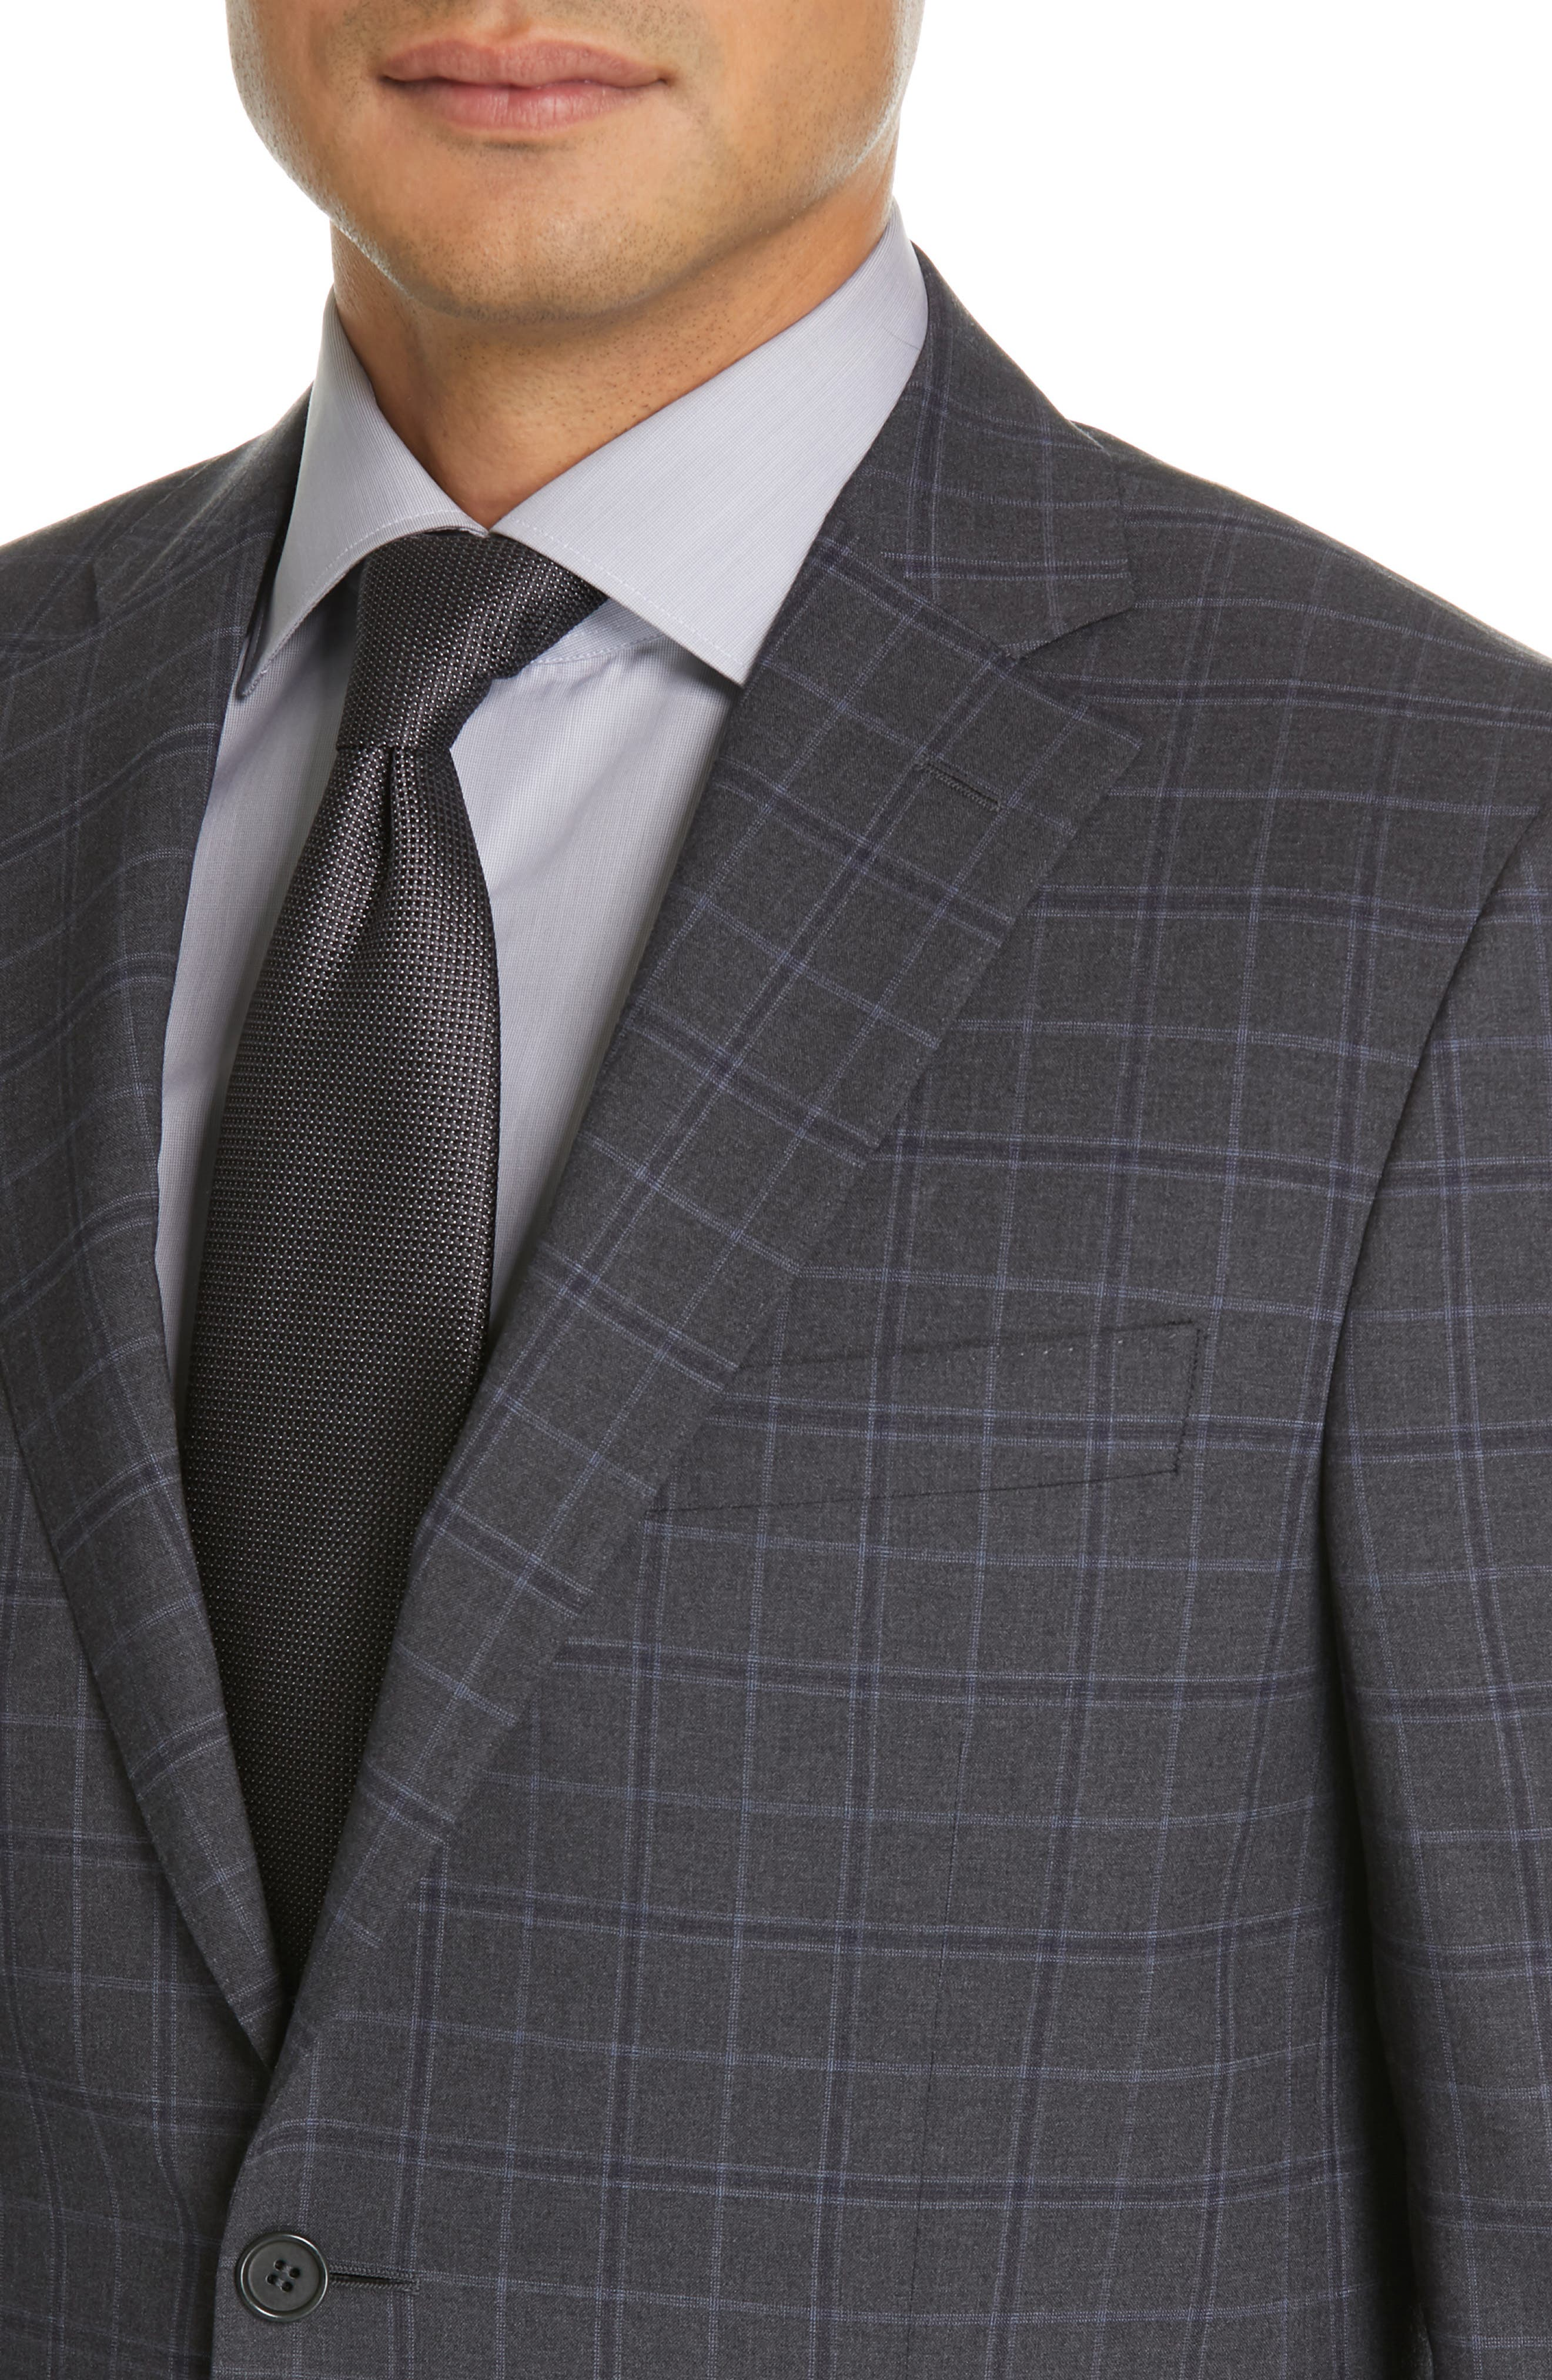 CANALI, Sienna Classic Fit Plaid Wool Suit, Alternate thumbnail 4, color, CHARCOAL